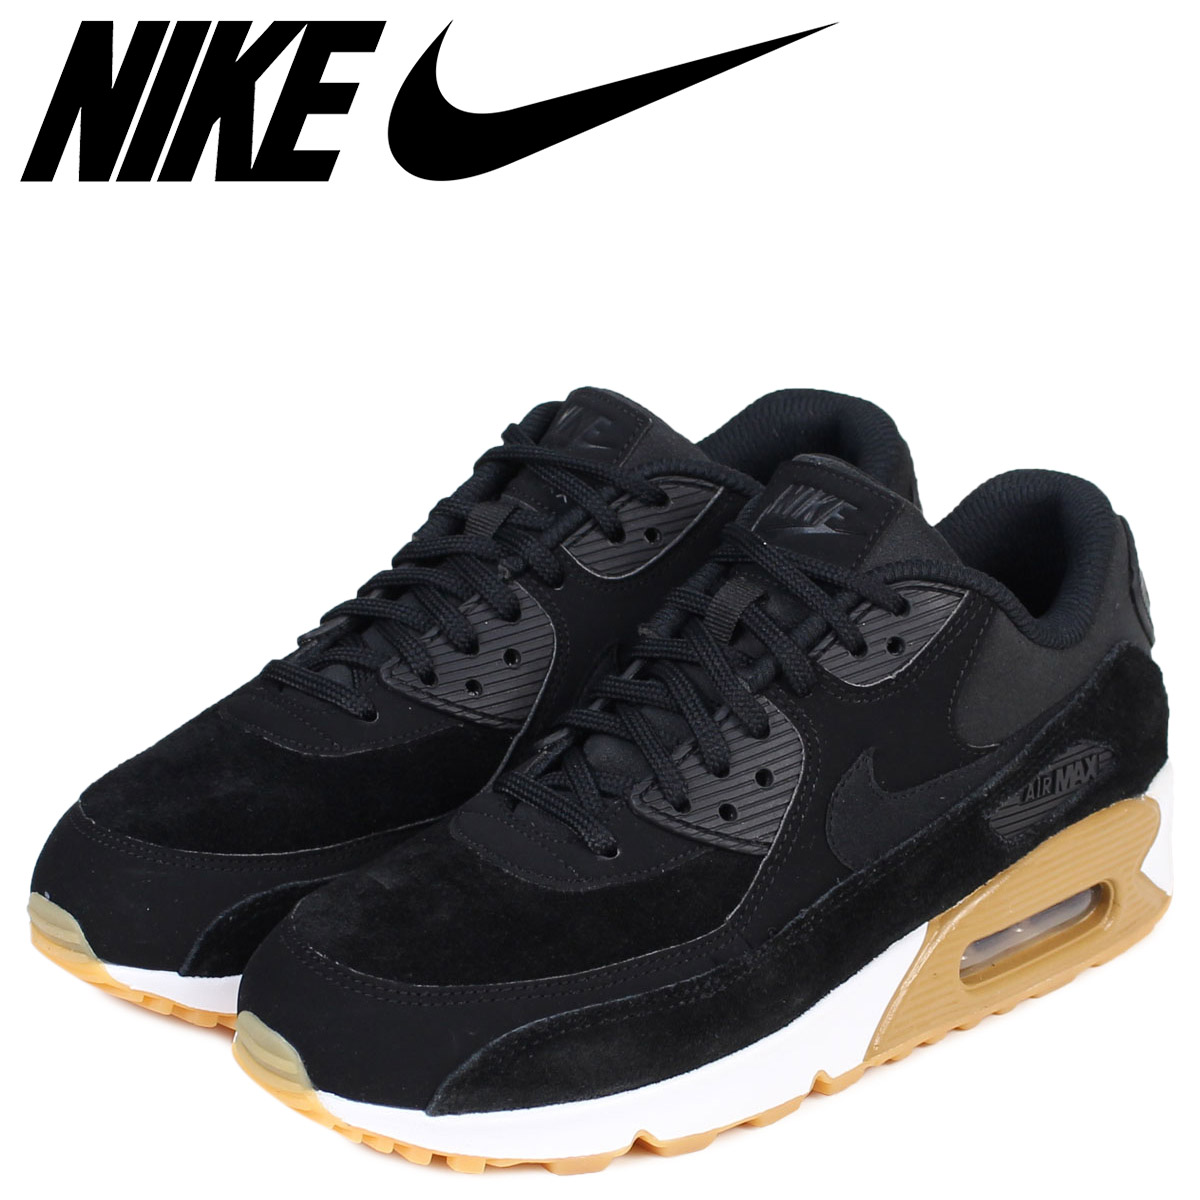 NIKE WMNS AIR MAX 90 SE Kie Ney AMAX 90 Lady's sneakers 881,105 003 shoes black [1023 Shinnyu load] [1710]